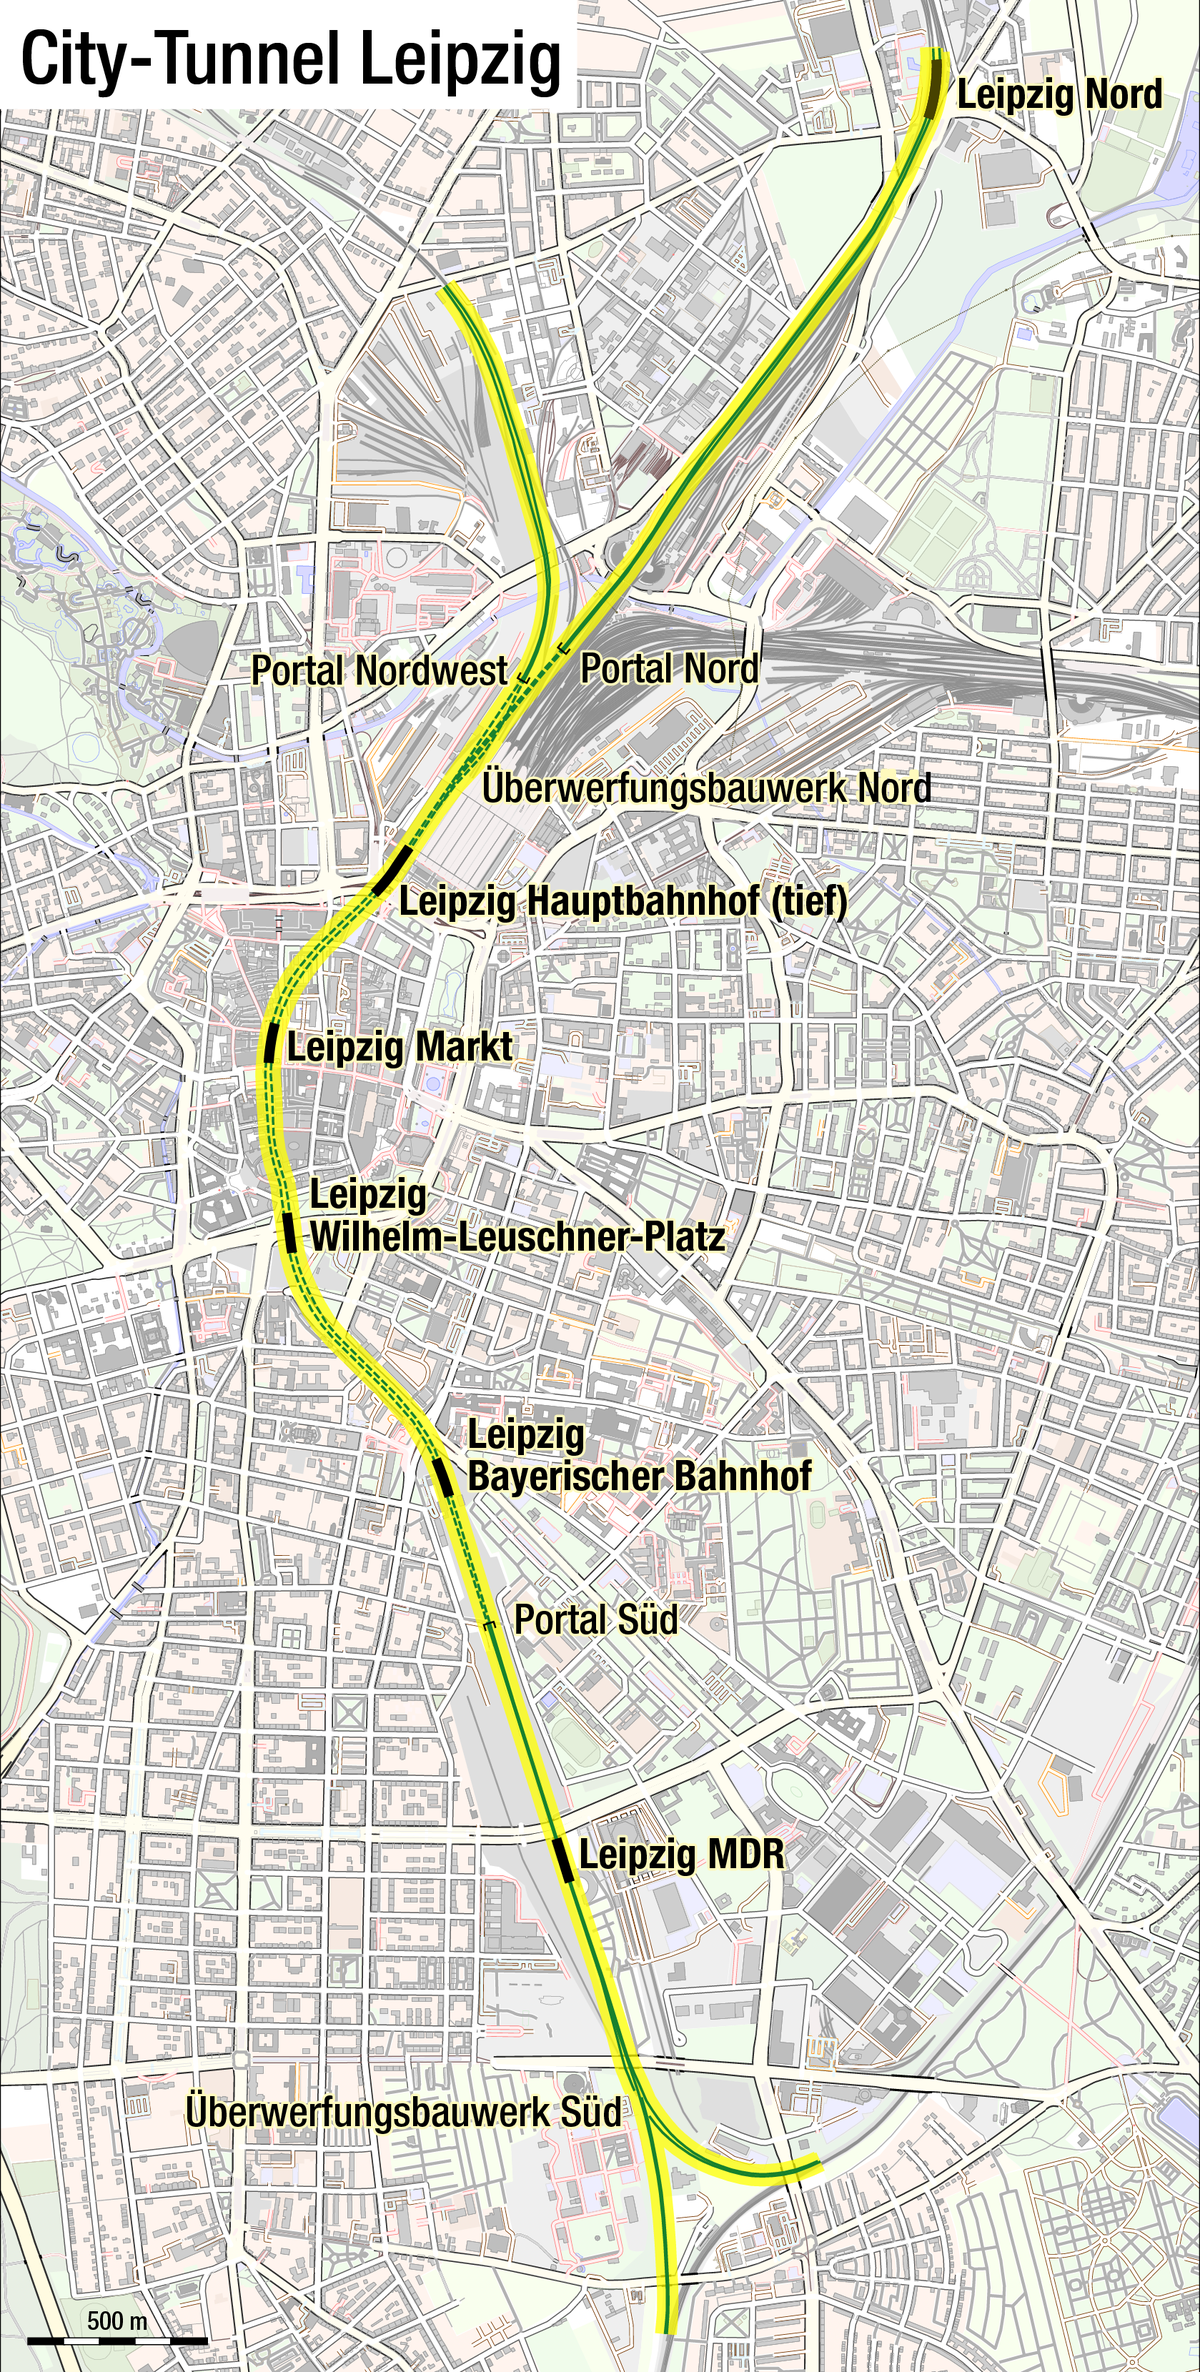 Leipzig City Tunnel Wikipedia